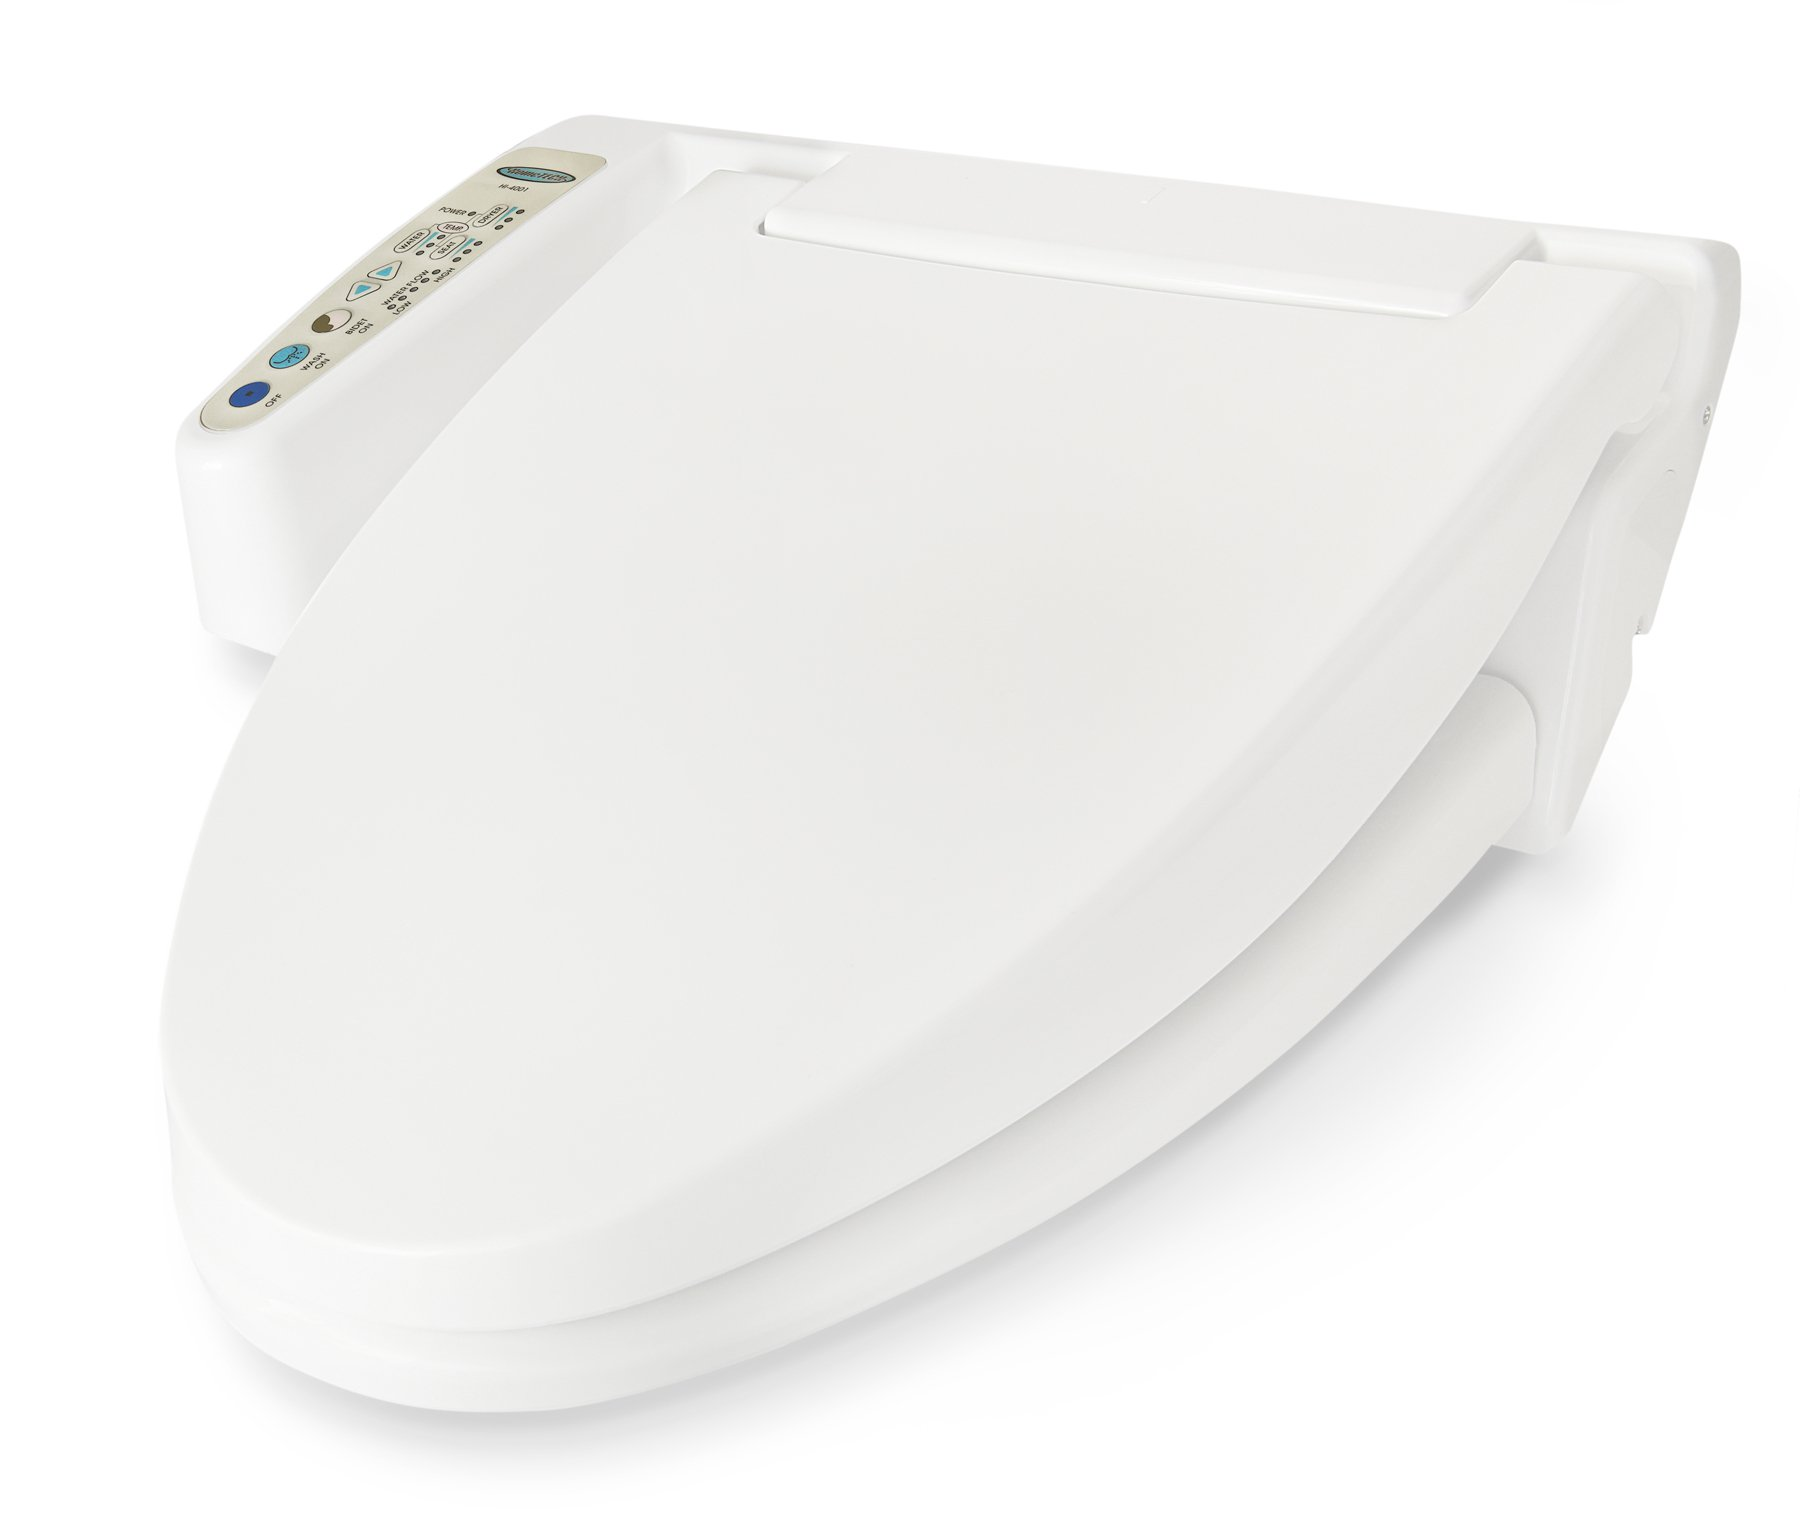 Feel Fresh HI-3001WT Elongated Basic Electric Bidet Seat (White) by Feel Fresh